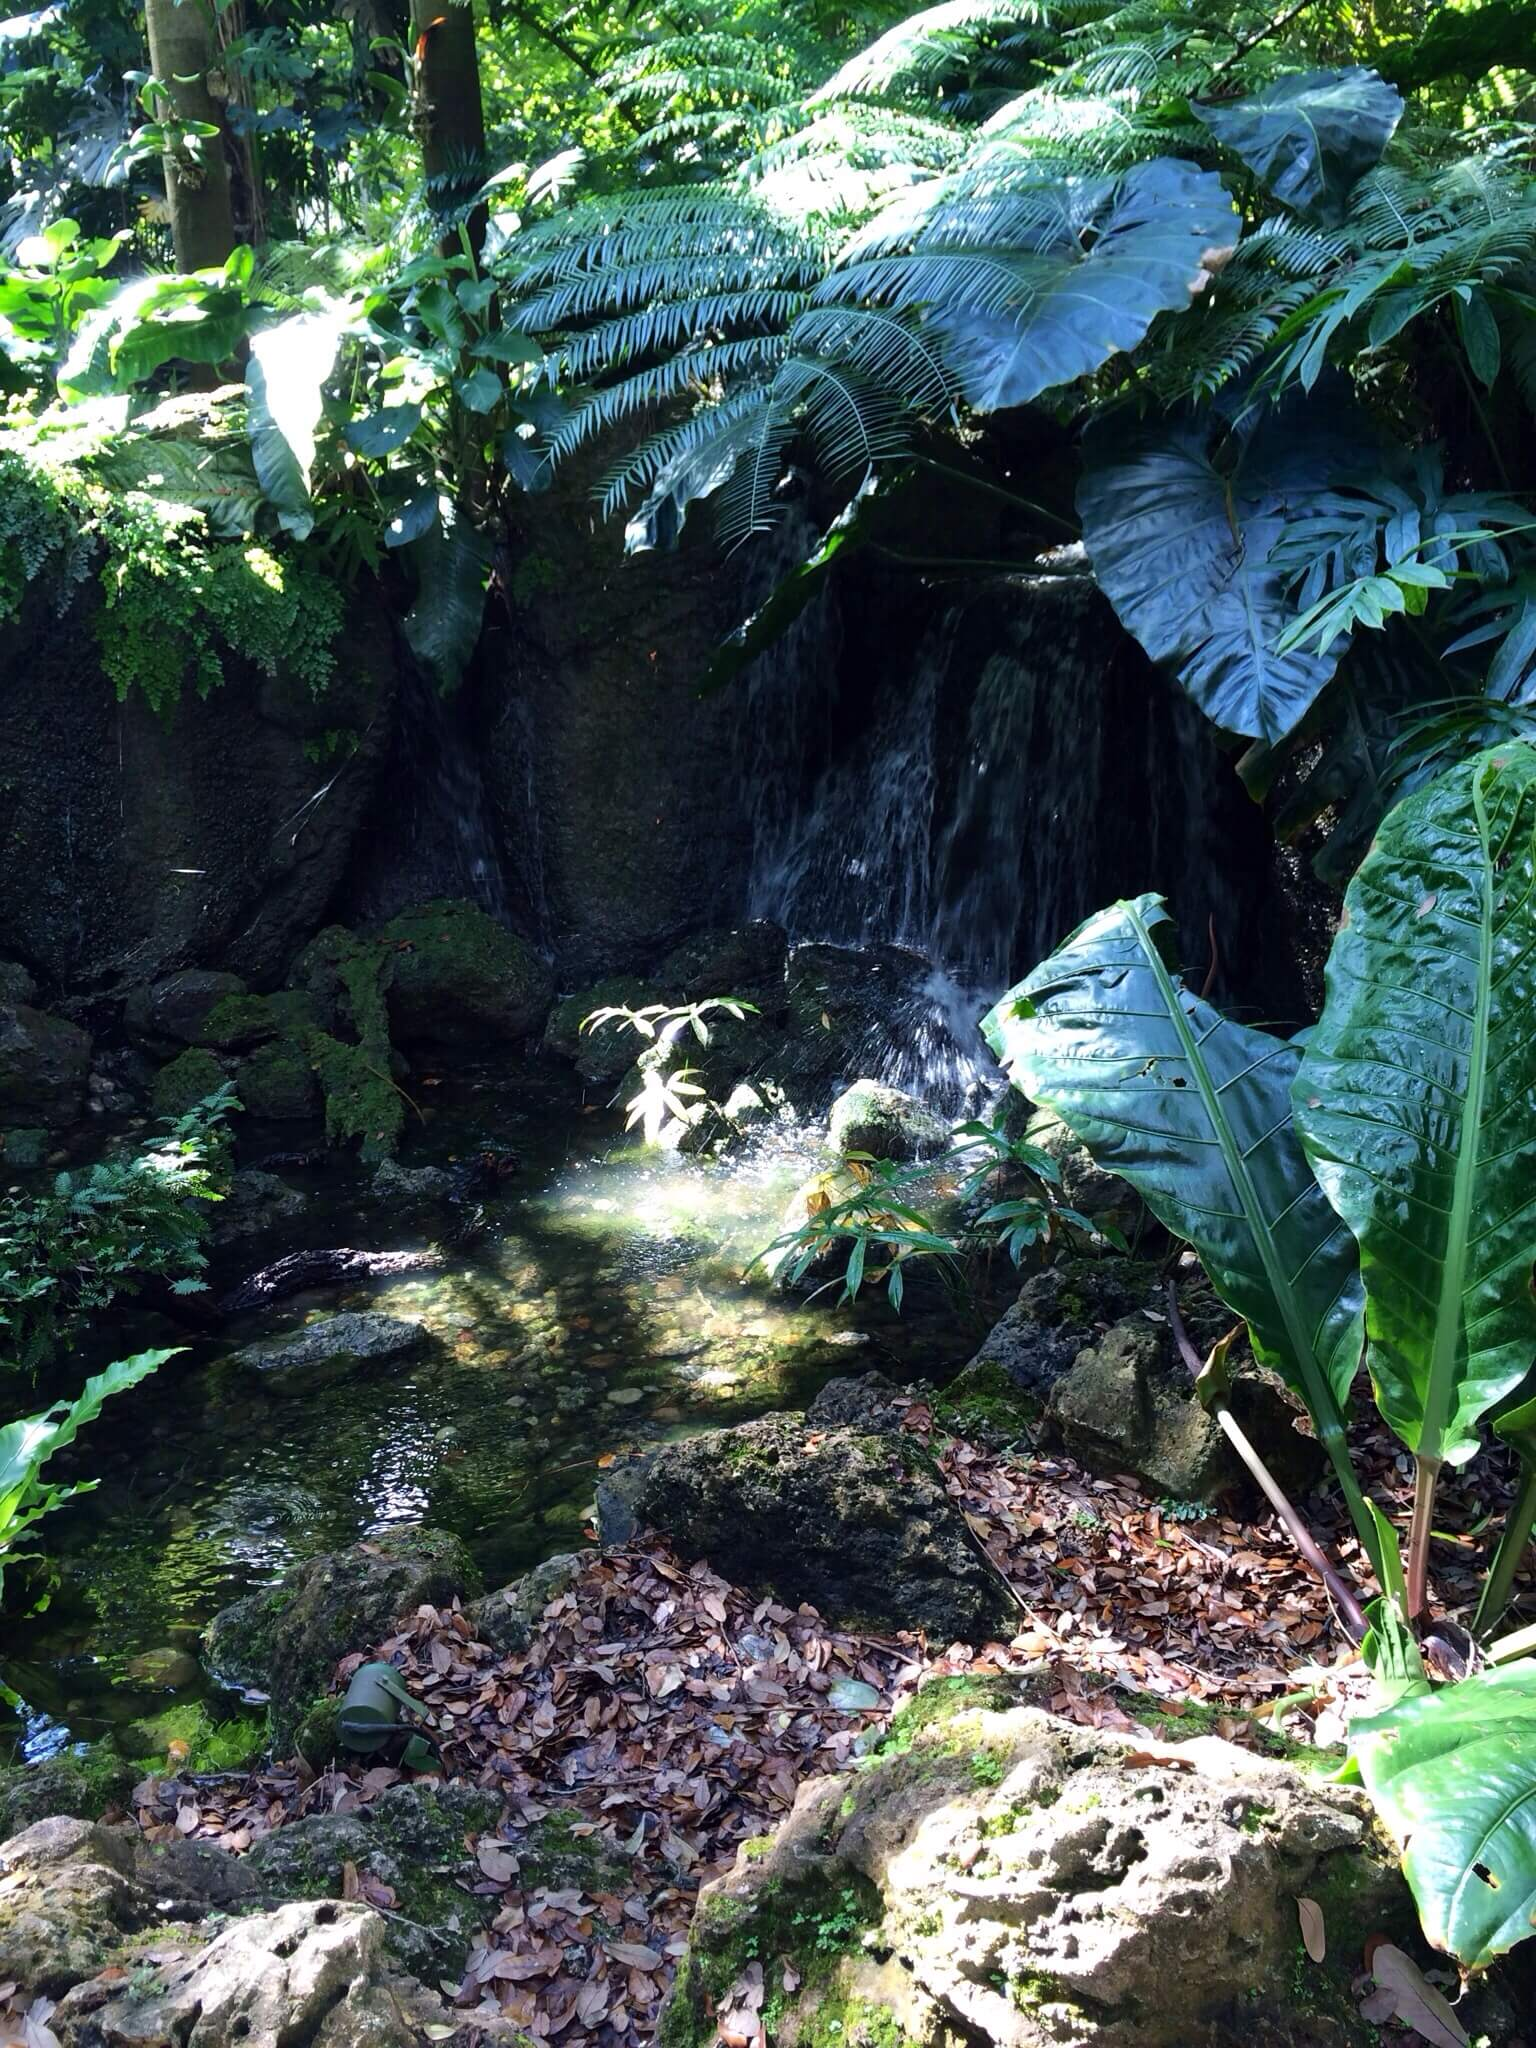 And here it is: the rainforest